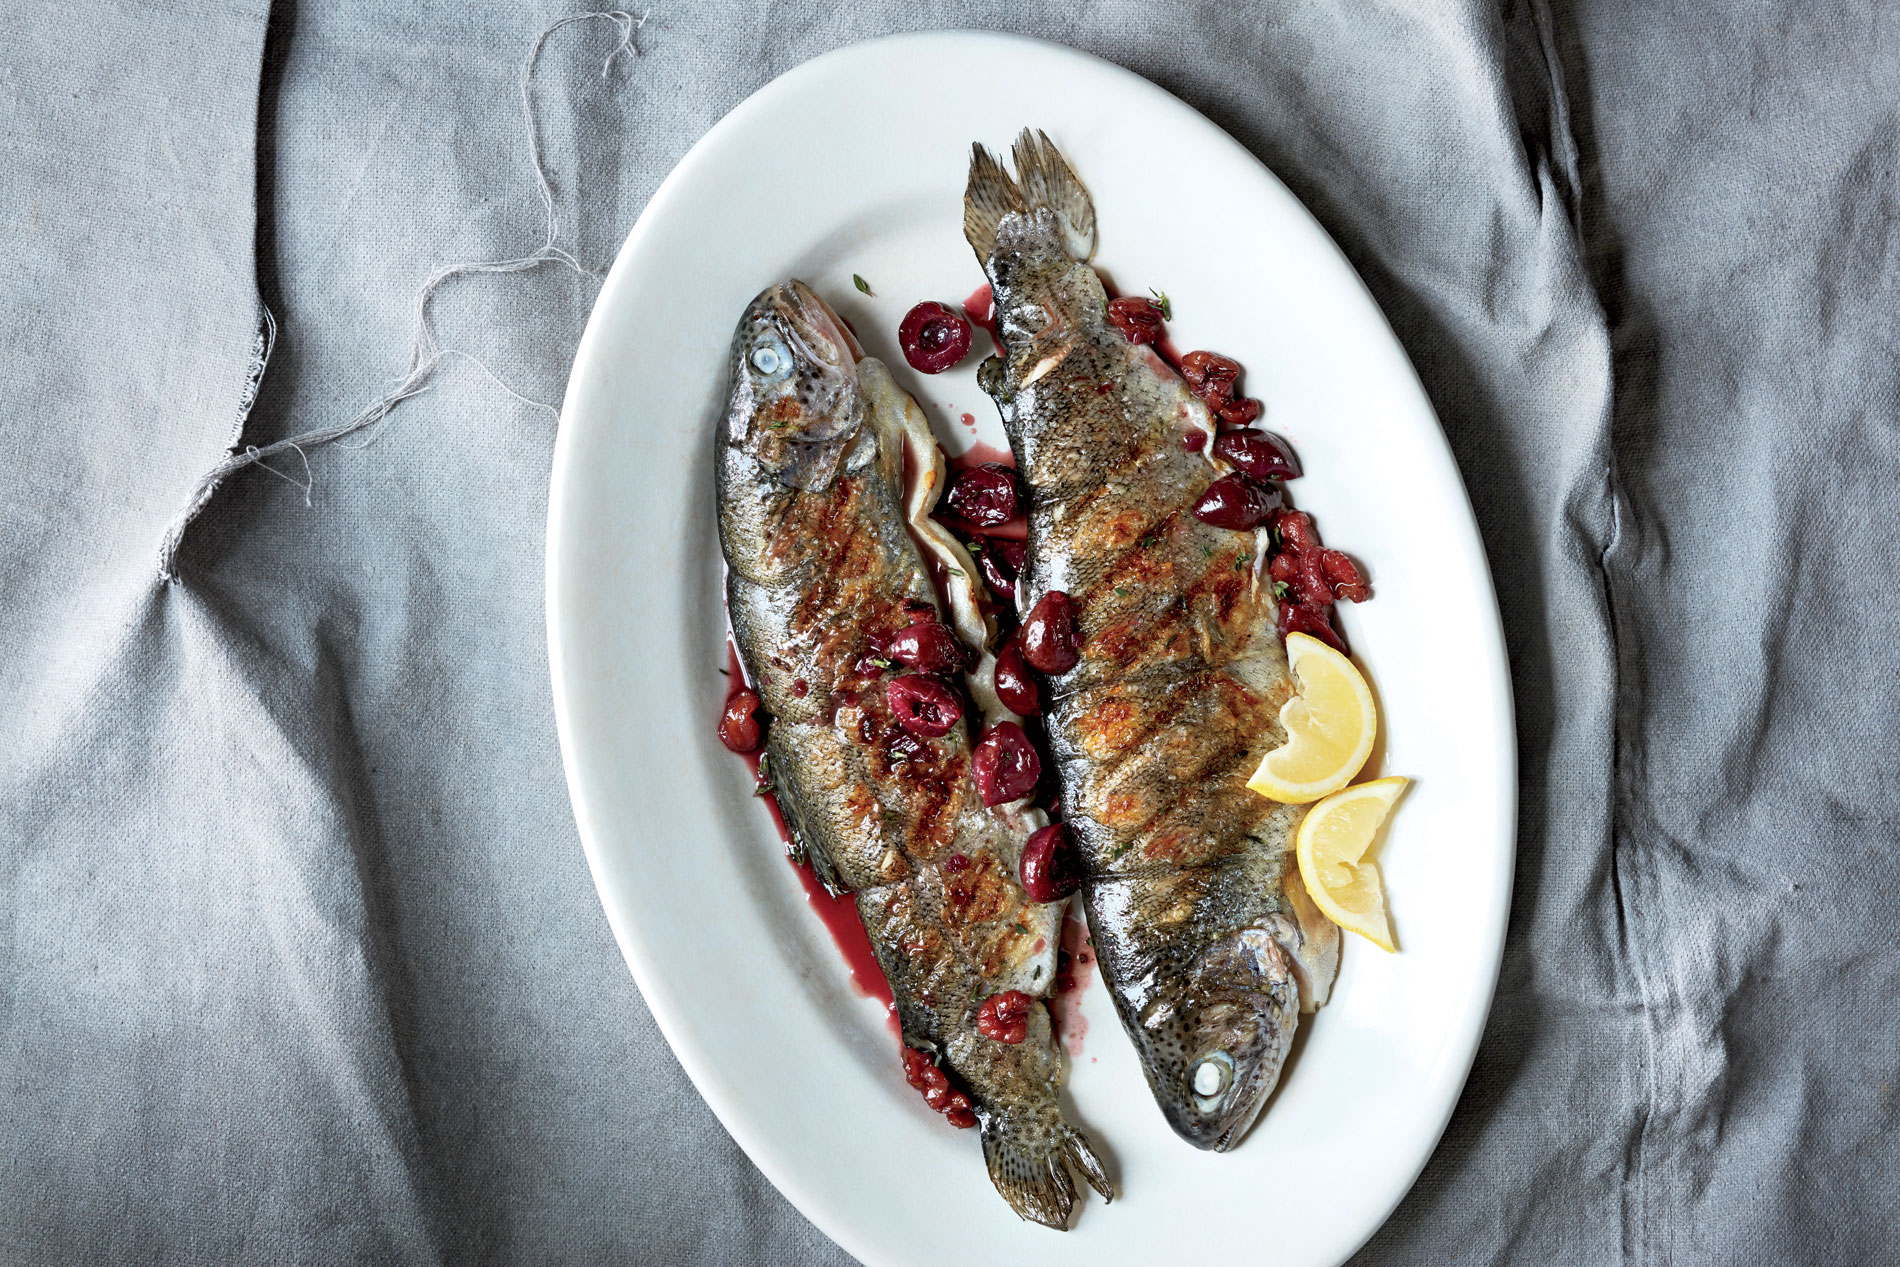 Grilled Trout with Cherry Compote